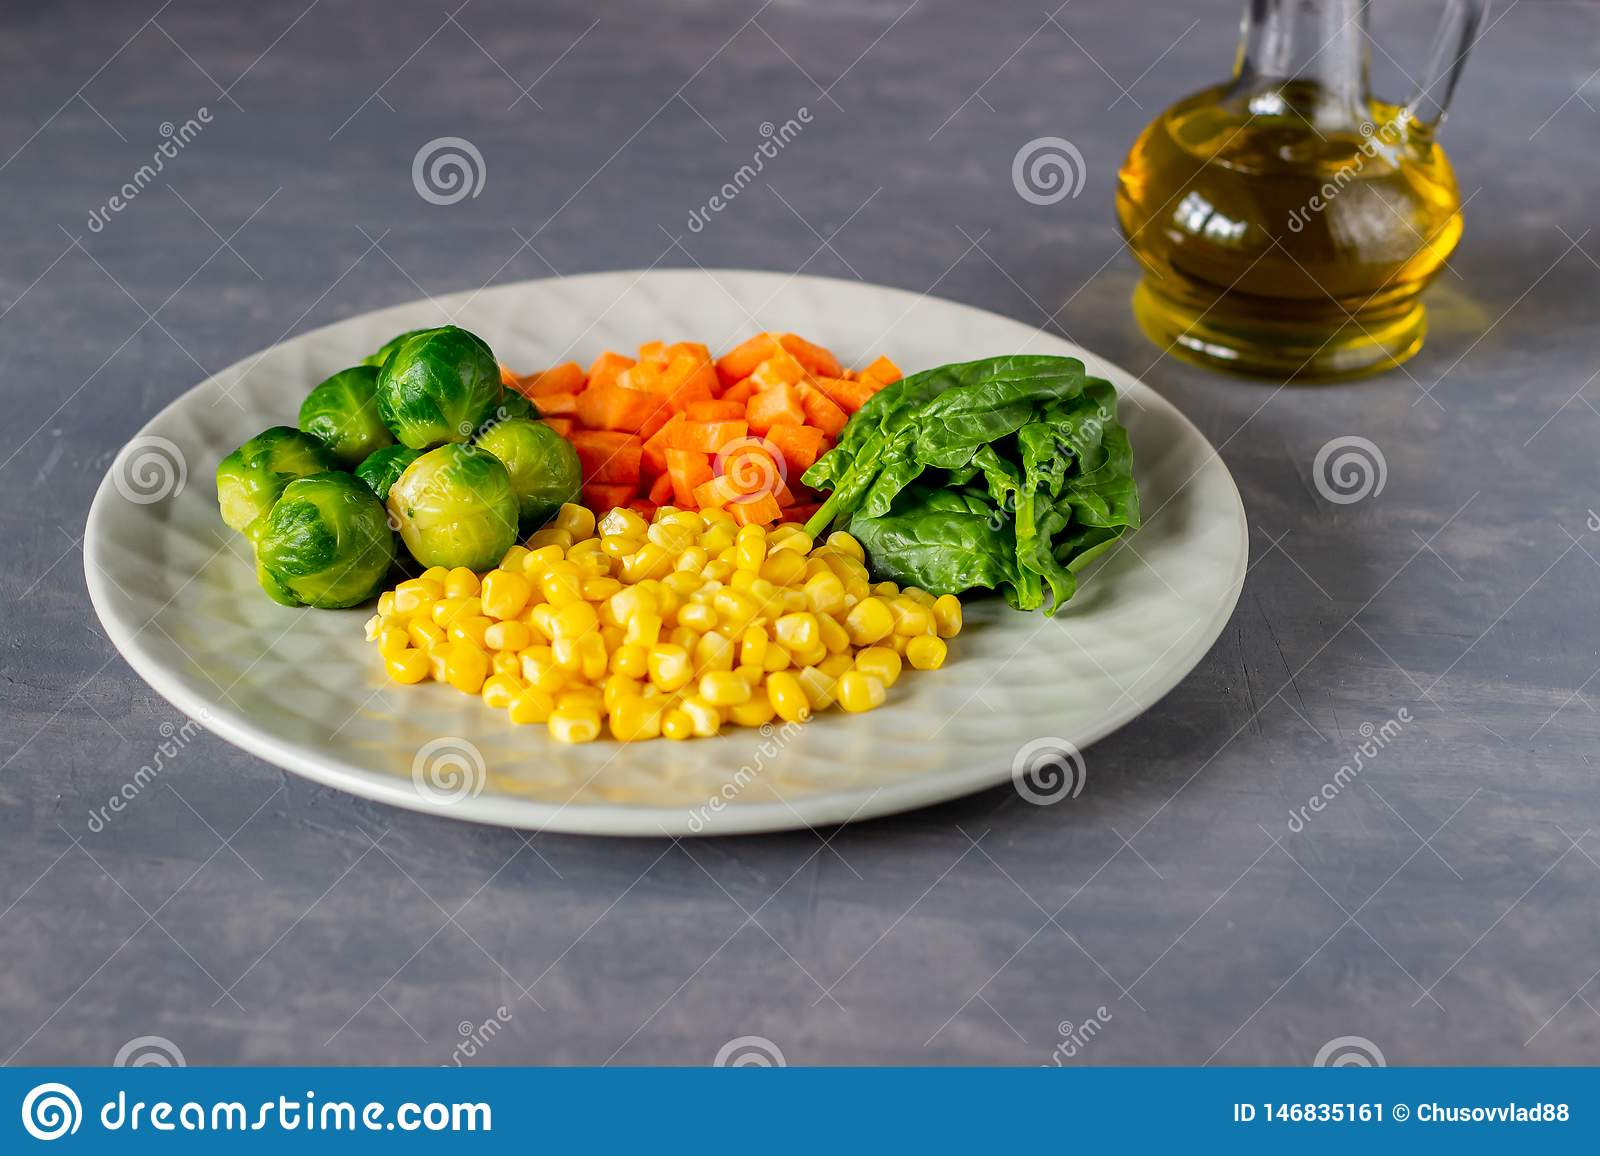 Plate with cabbage, carrots, corn and spinach. Healthy eating